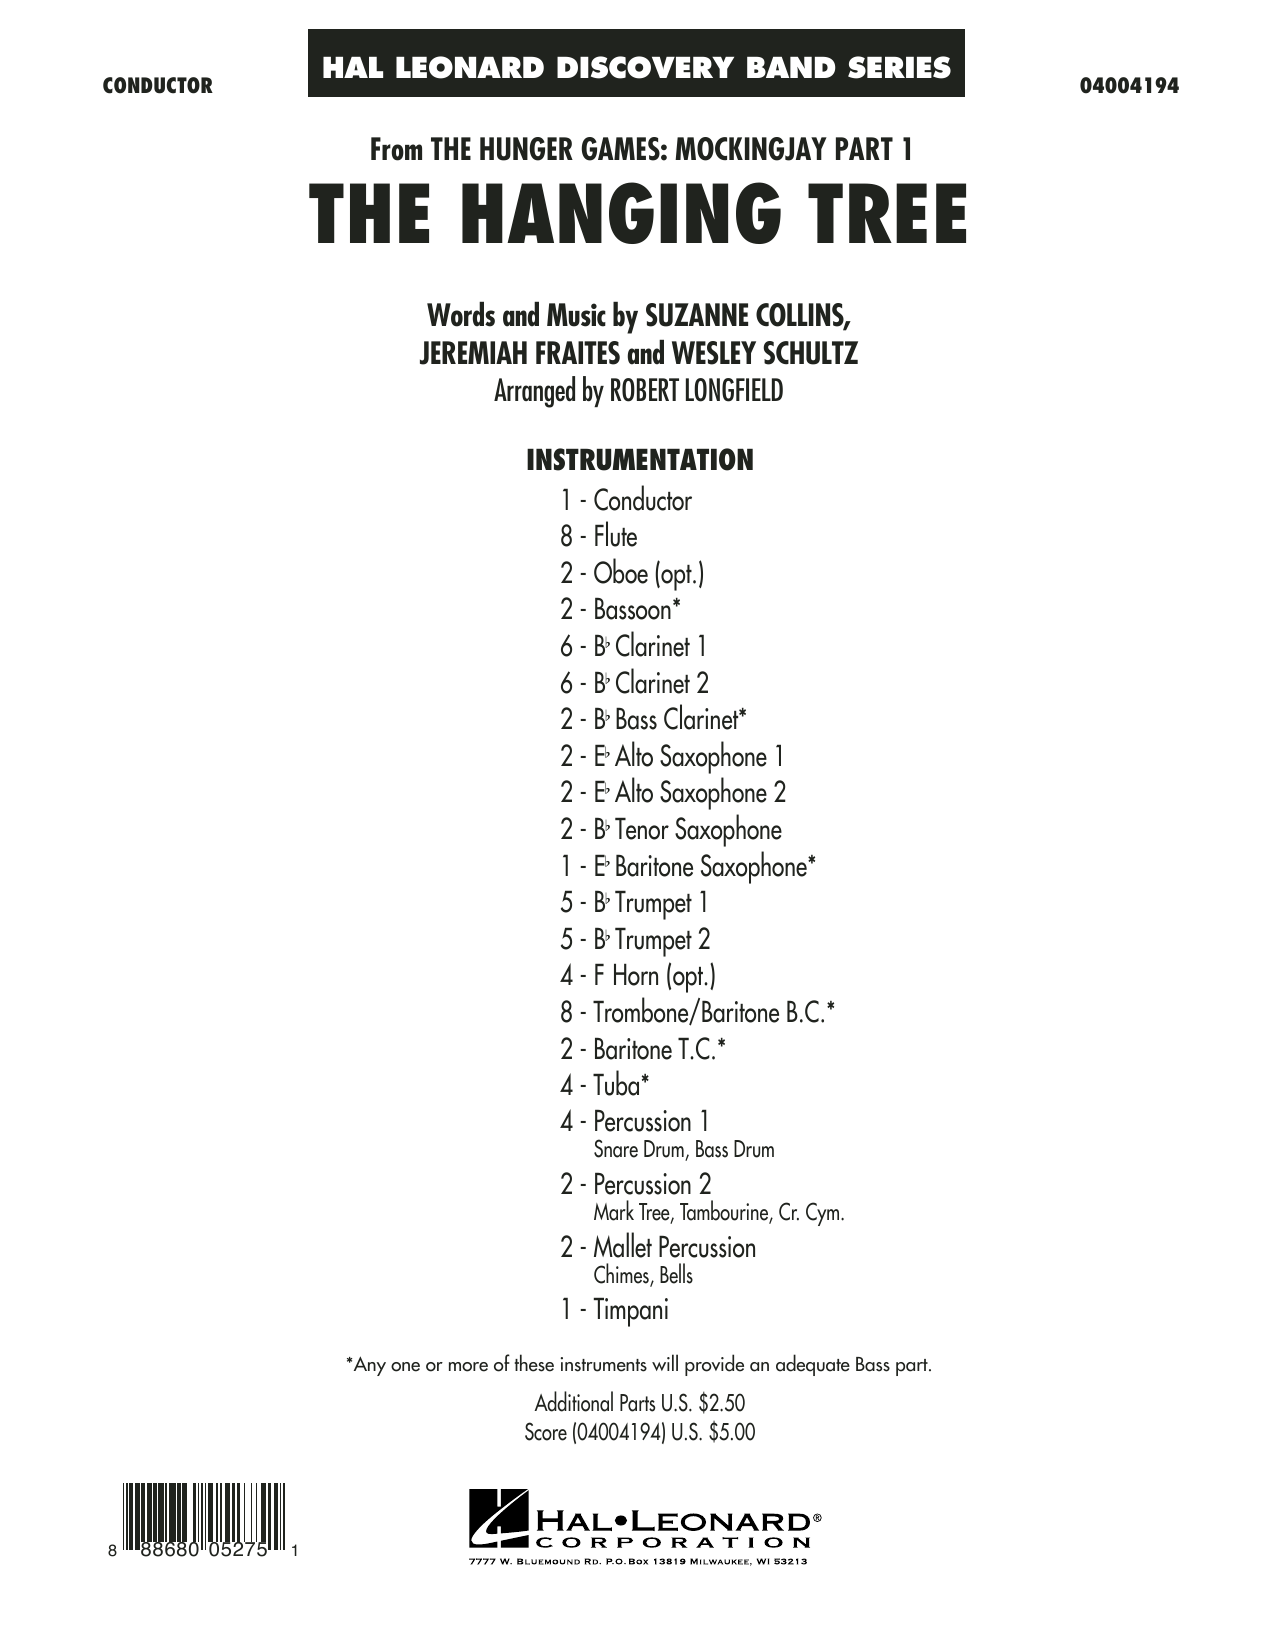 The Hanging Tree (from The Hunger Games: Mockingjay Part 1) - Conductor Score (Full Score) (Concert Band)